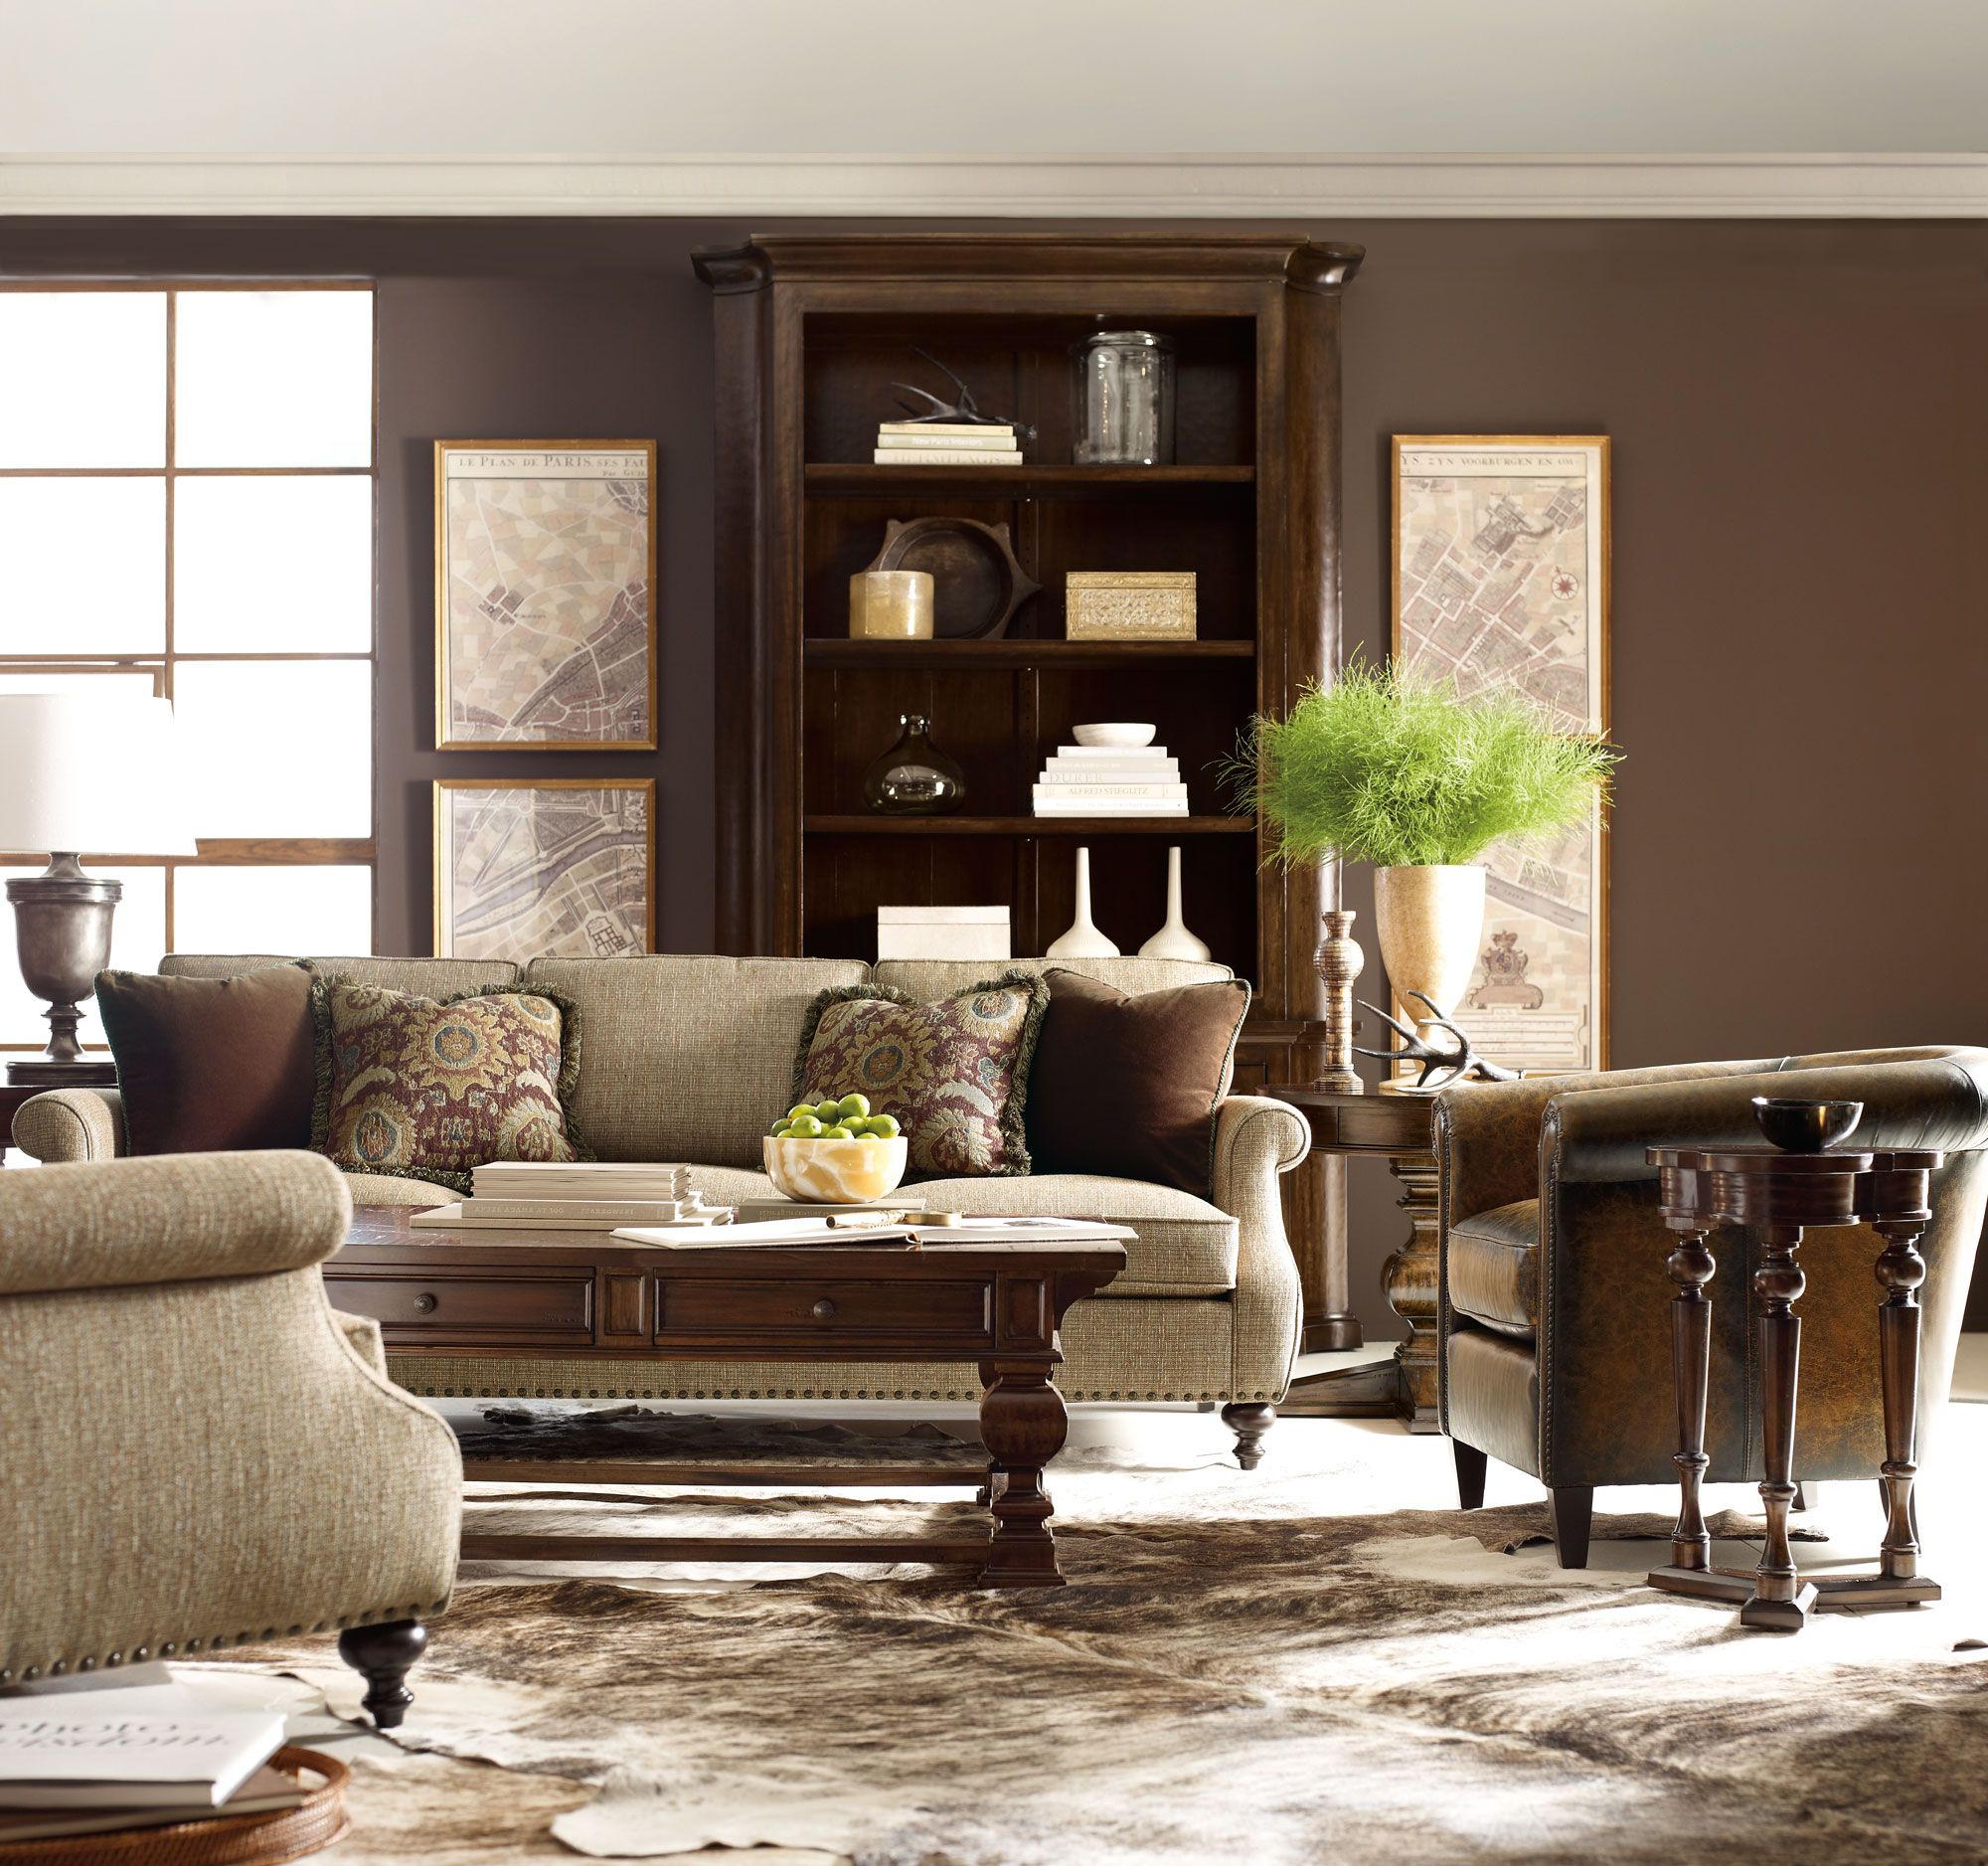 Comfortable Den Furniture Howell Huntington Celeste Fenwick Bernhardt Love The